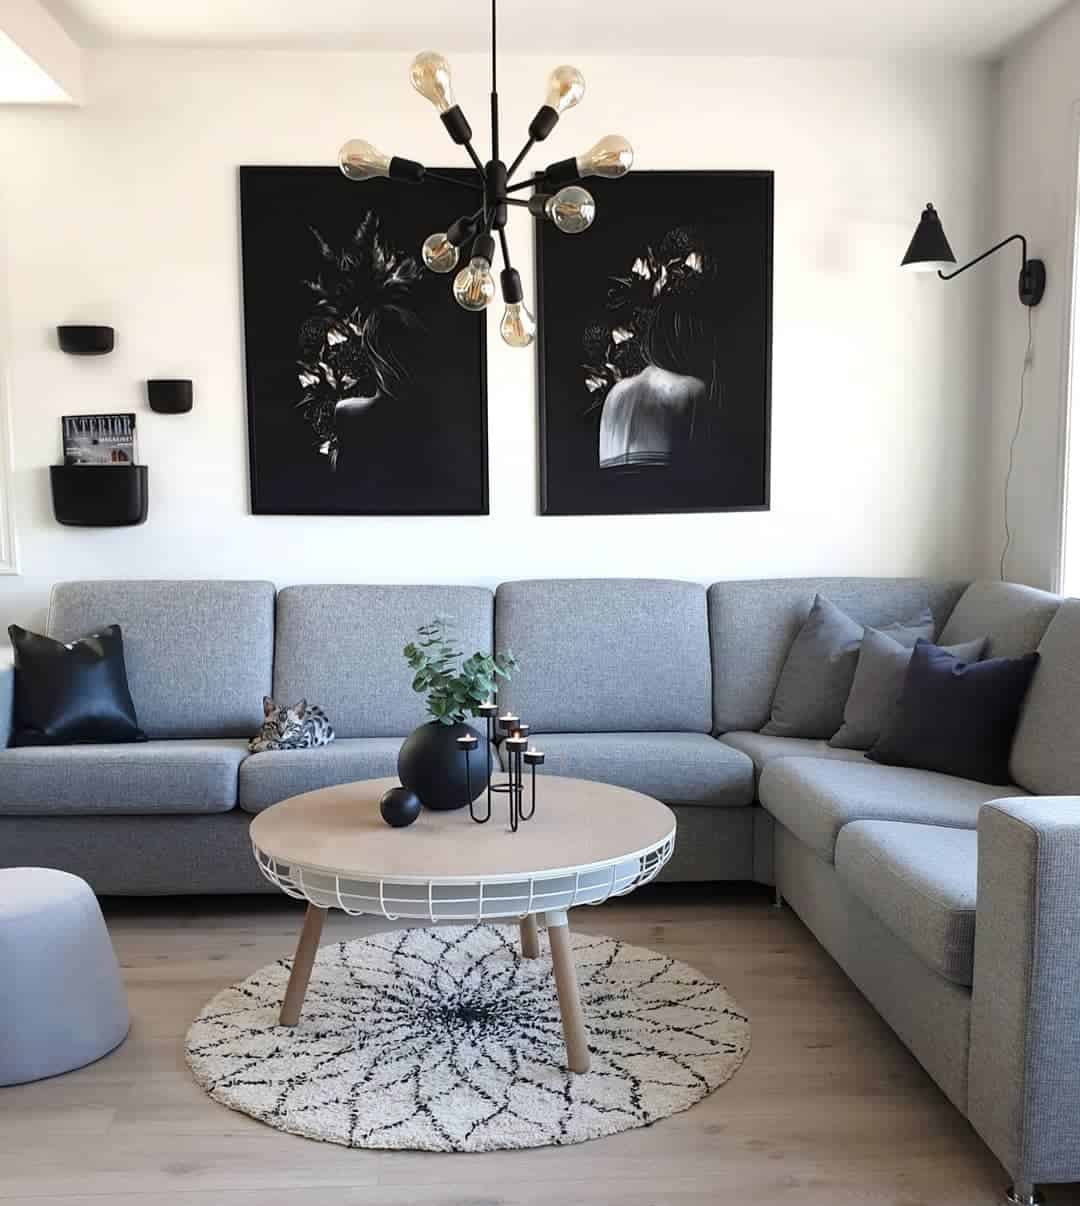 Top 4 Stylish Trends and Ideas For Living Room 2020 (40 ...